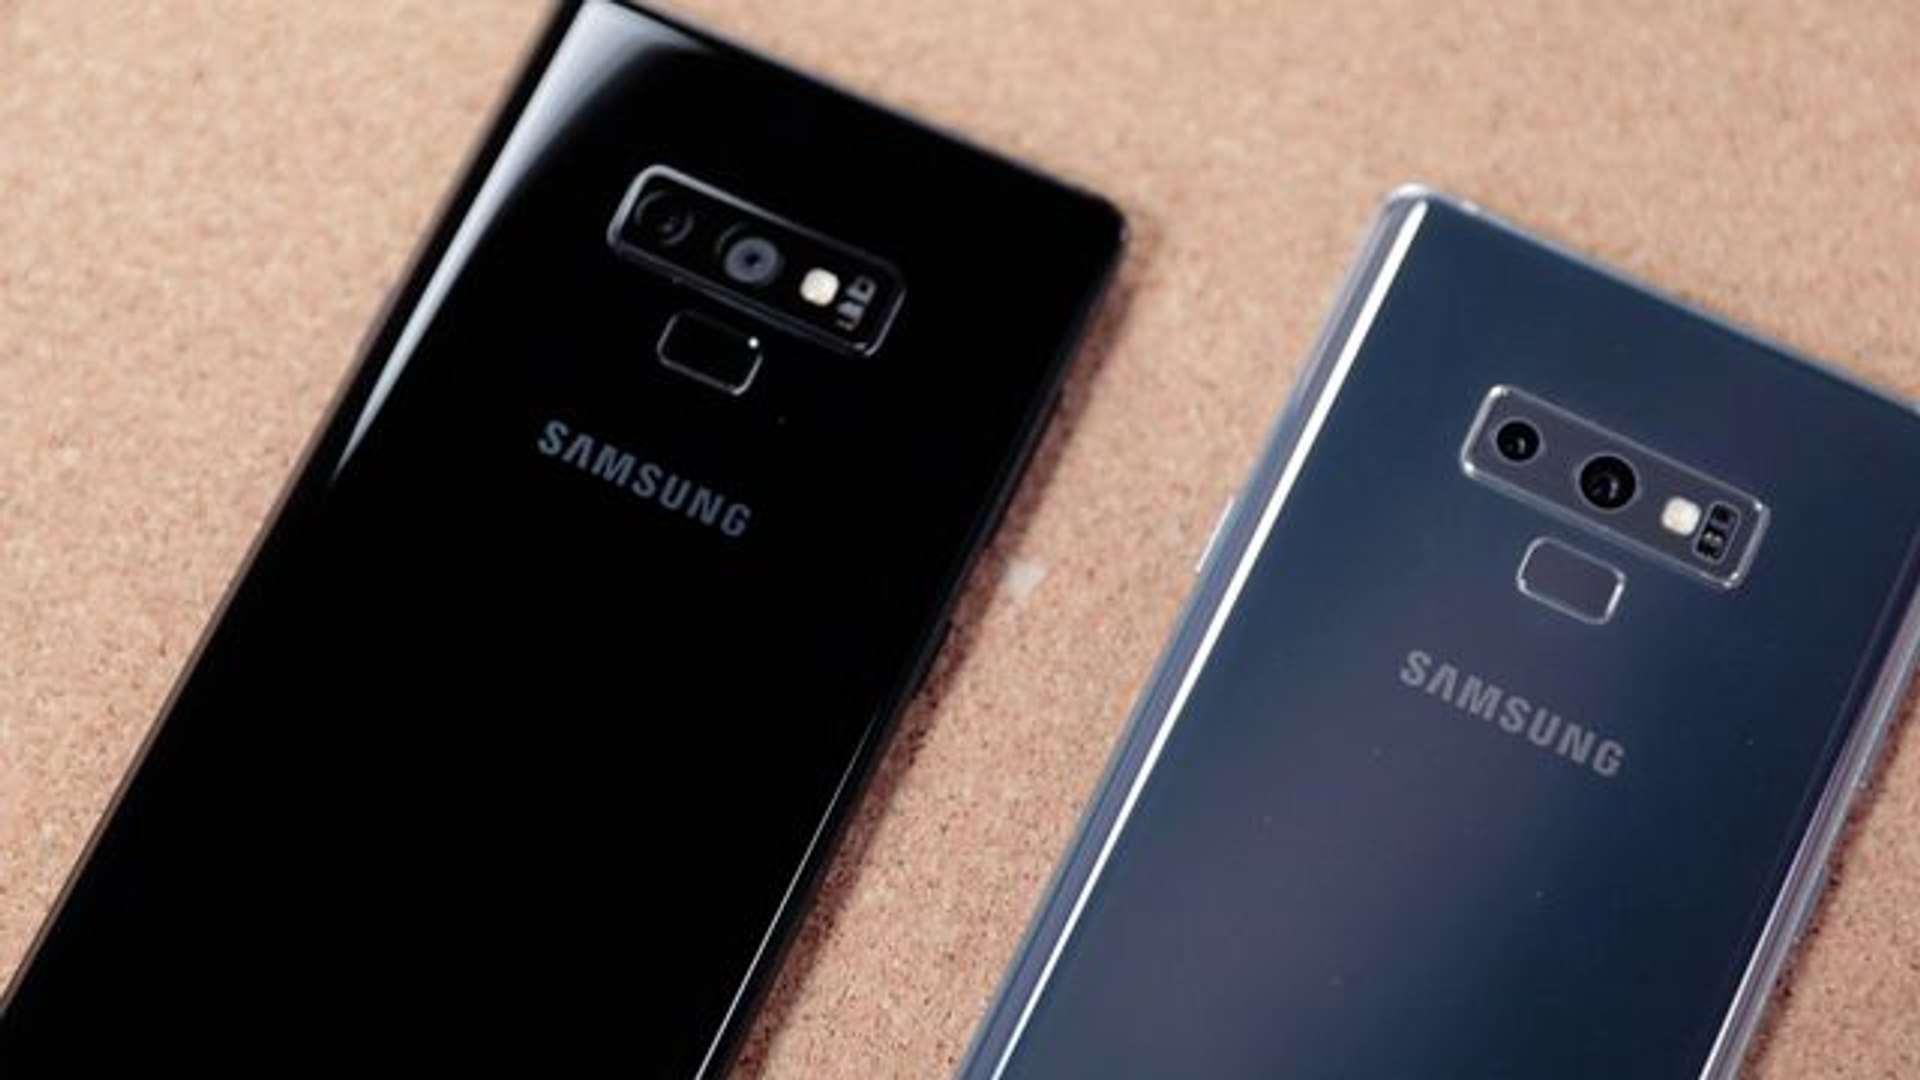 Samsung Galaxy Note 9 now comes in cloud silver